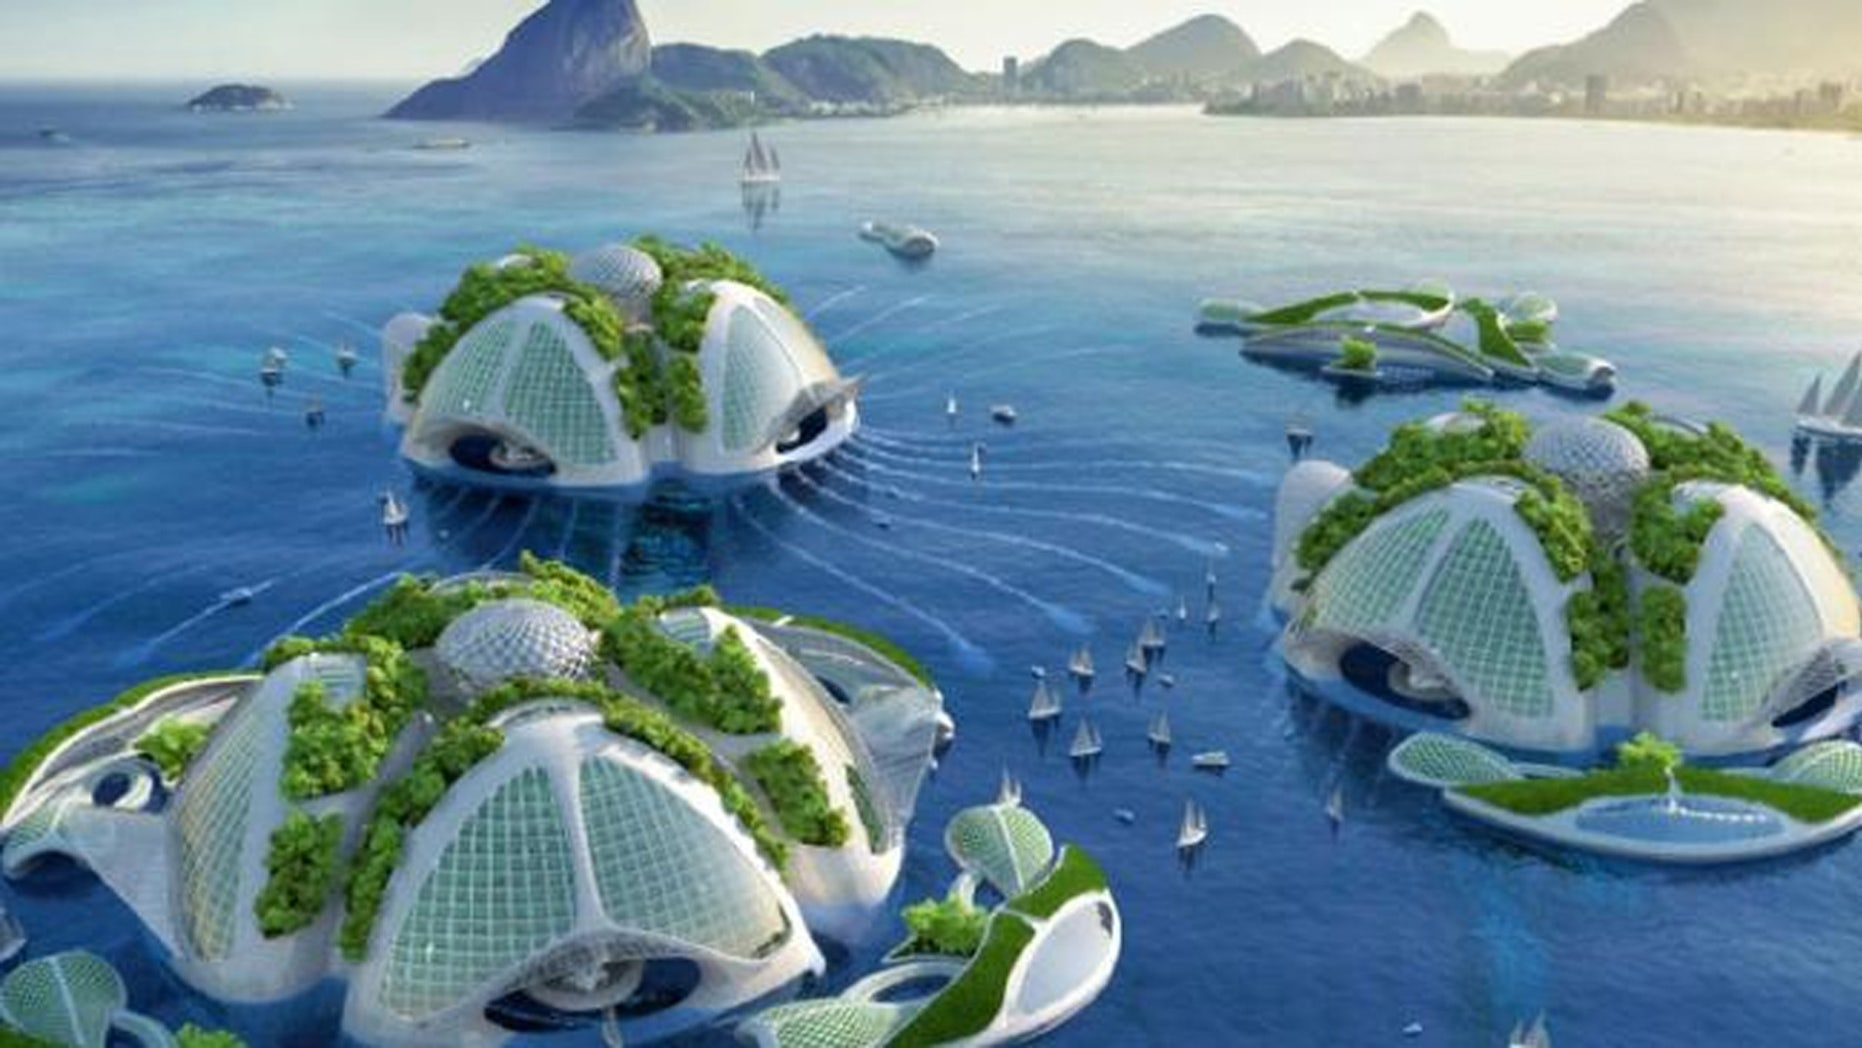 Belgian architect Vincent Callebaut has come up with ambitious plans to build futuristic ocean skyscrapers.